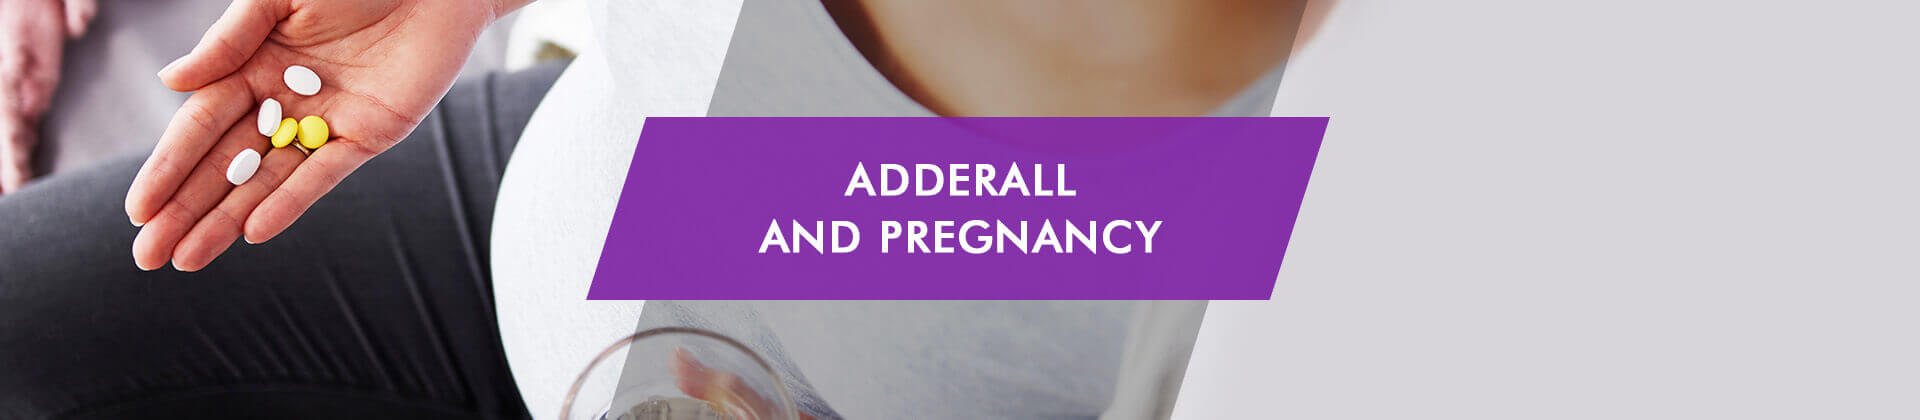 pregnant woman taking pills and adderall in pregnancy caption